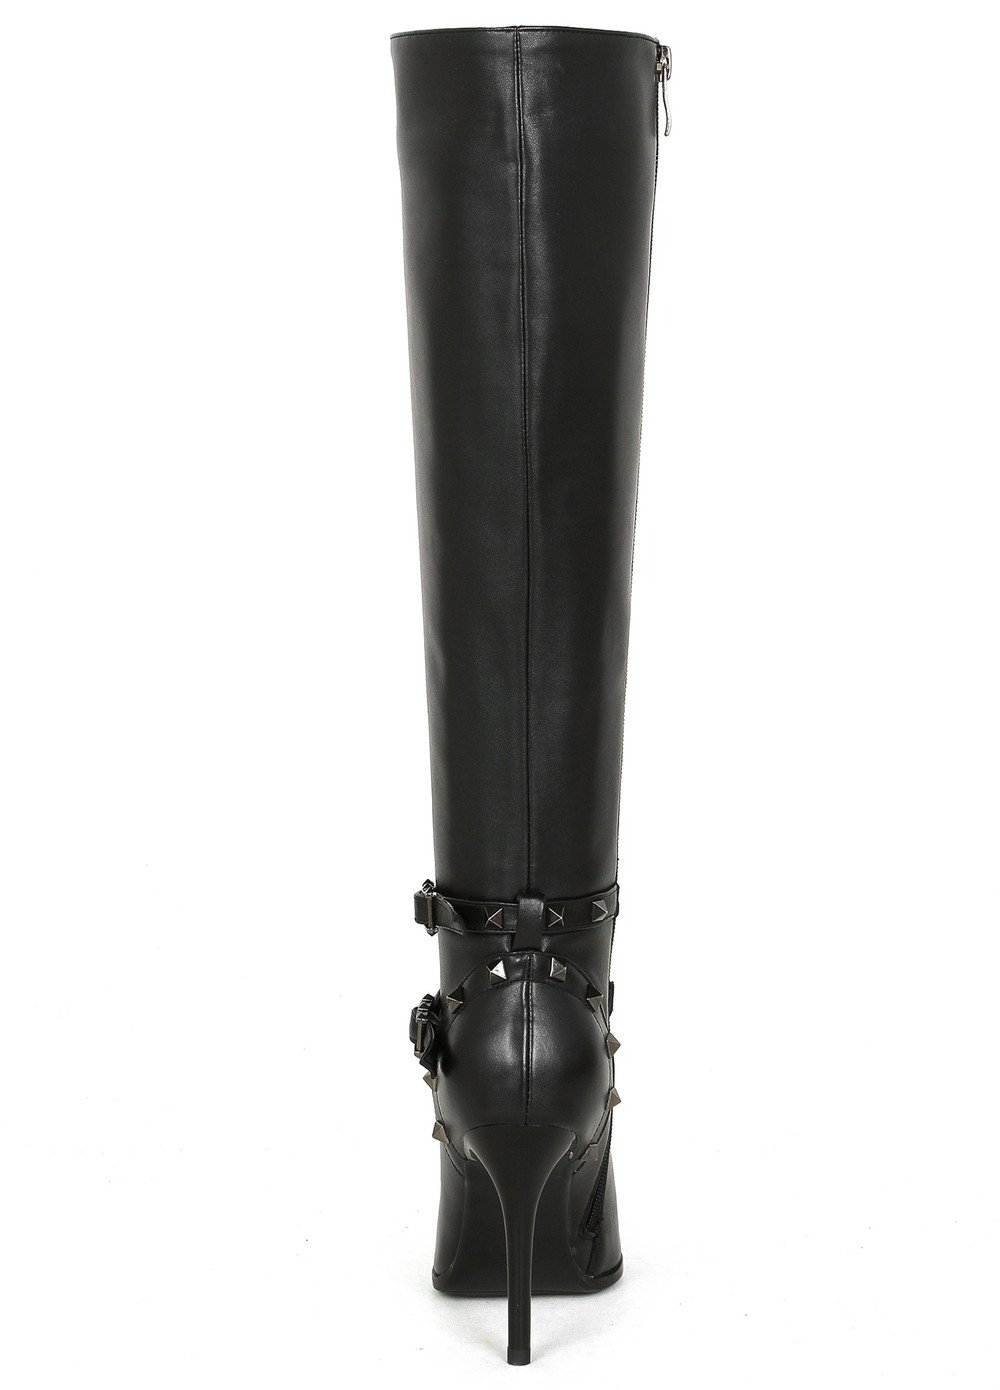 Nine Seven Genuine Leather-Women's Rivets Pointed Toe-HIgh Stiletto Heel-Handmade Rivets Leather-Women's Strappy Dressy Sexy Knee High Boots B075CZH4LR 10 M US|Black 410c21